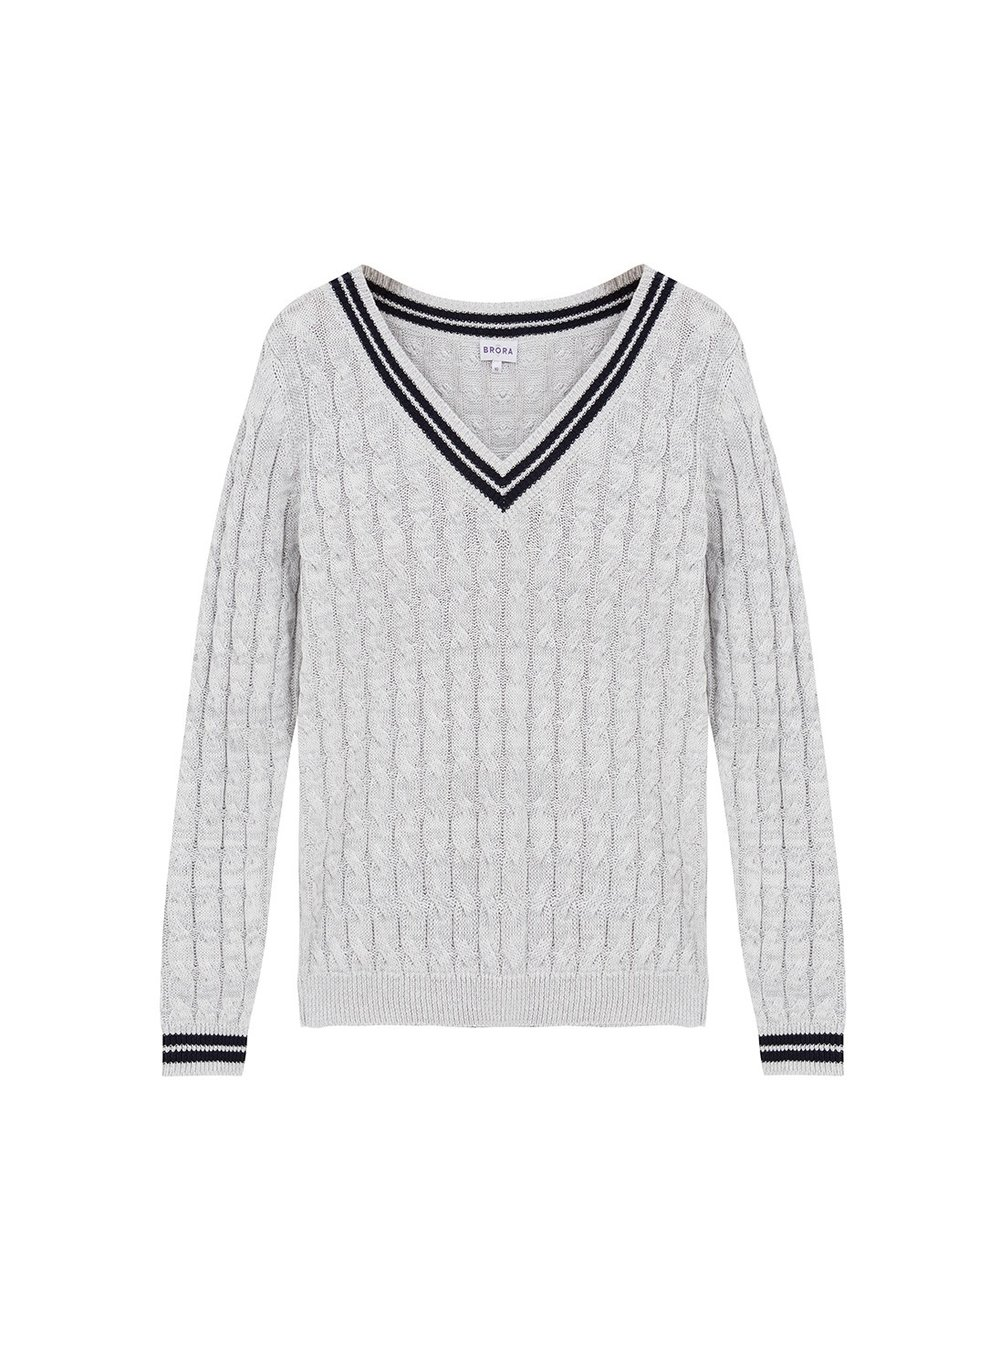 Linen and cotton jumper, £69 by Brora